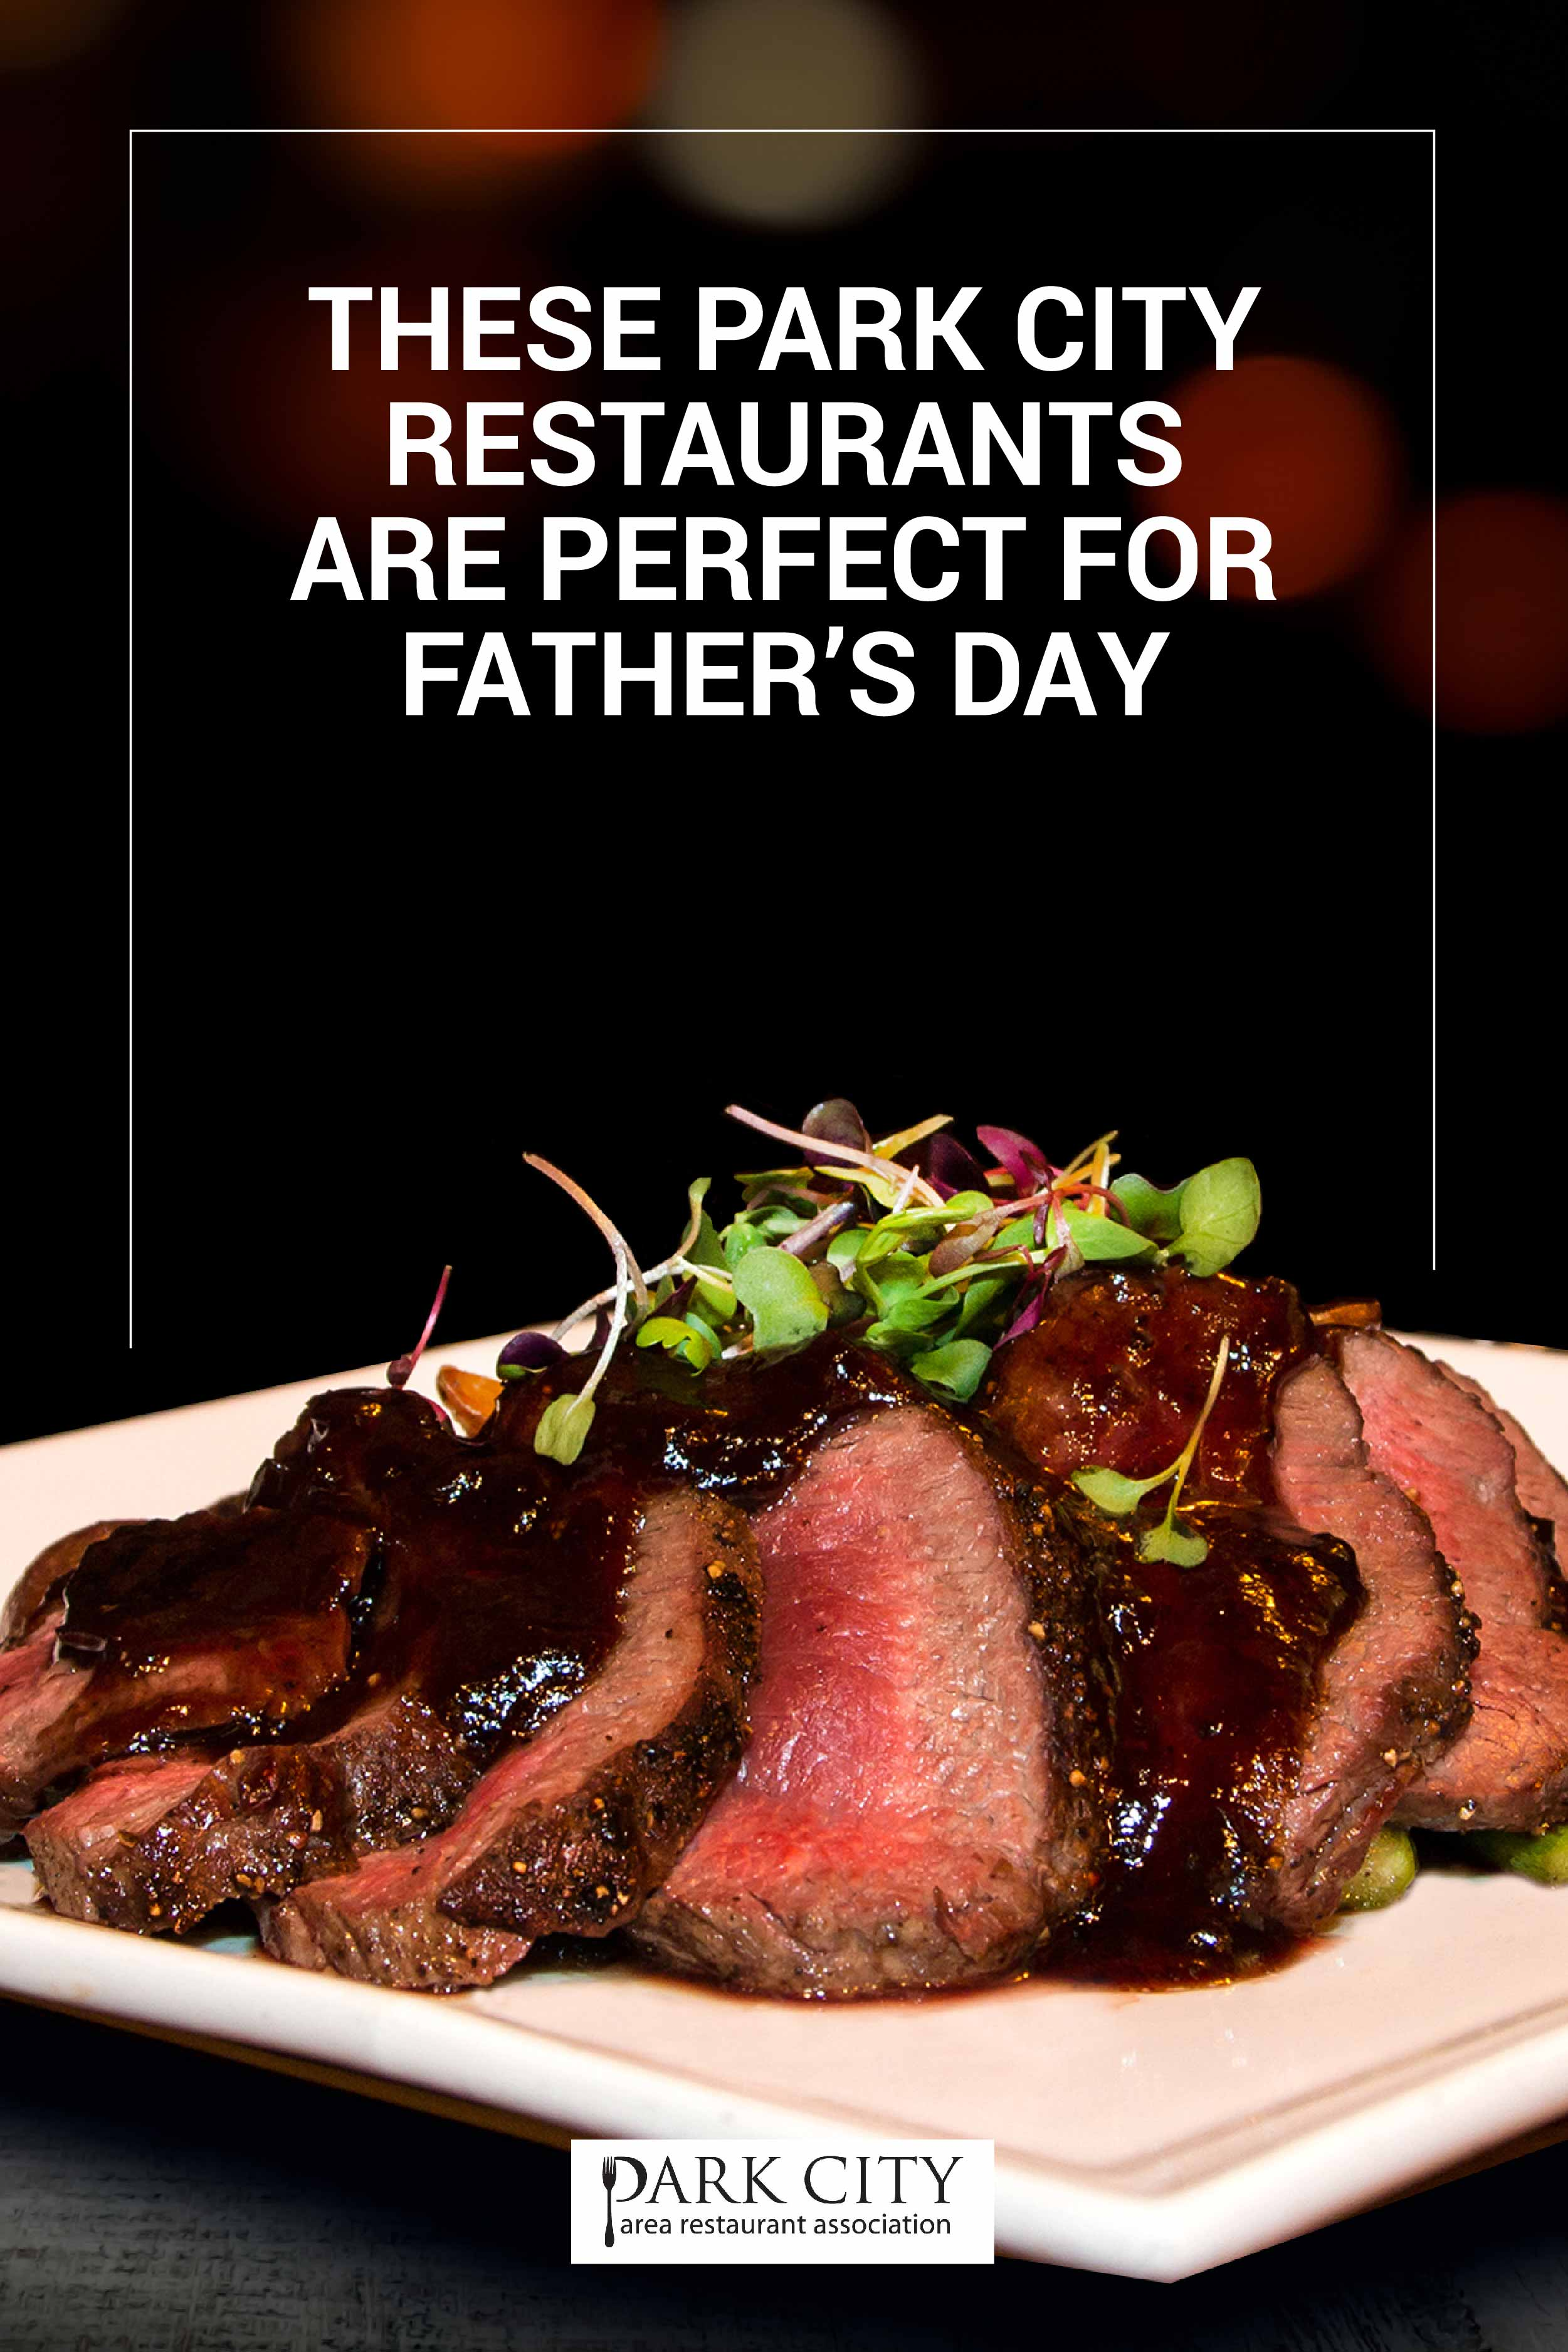 restaurants-open-on-fathers-day-in-park-city-utah